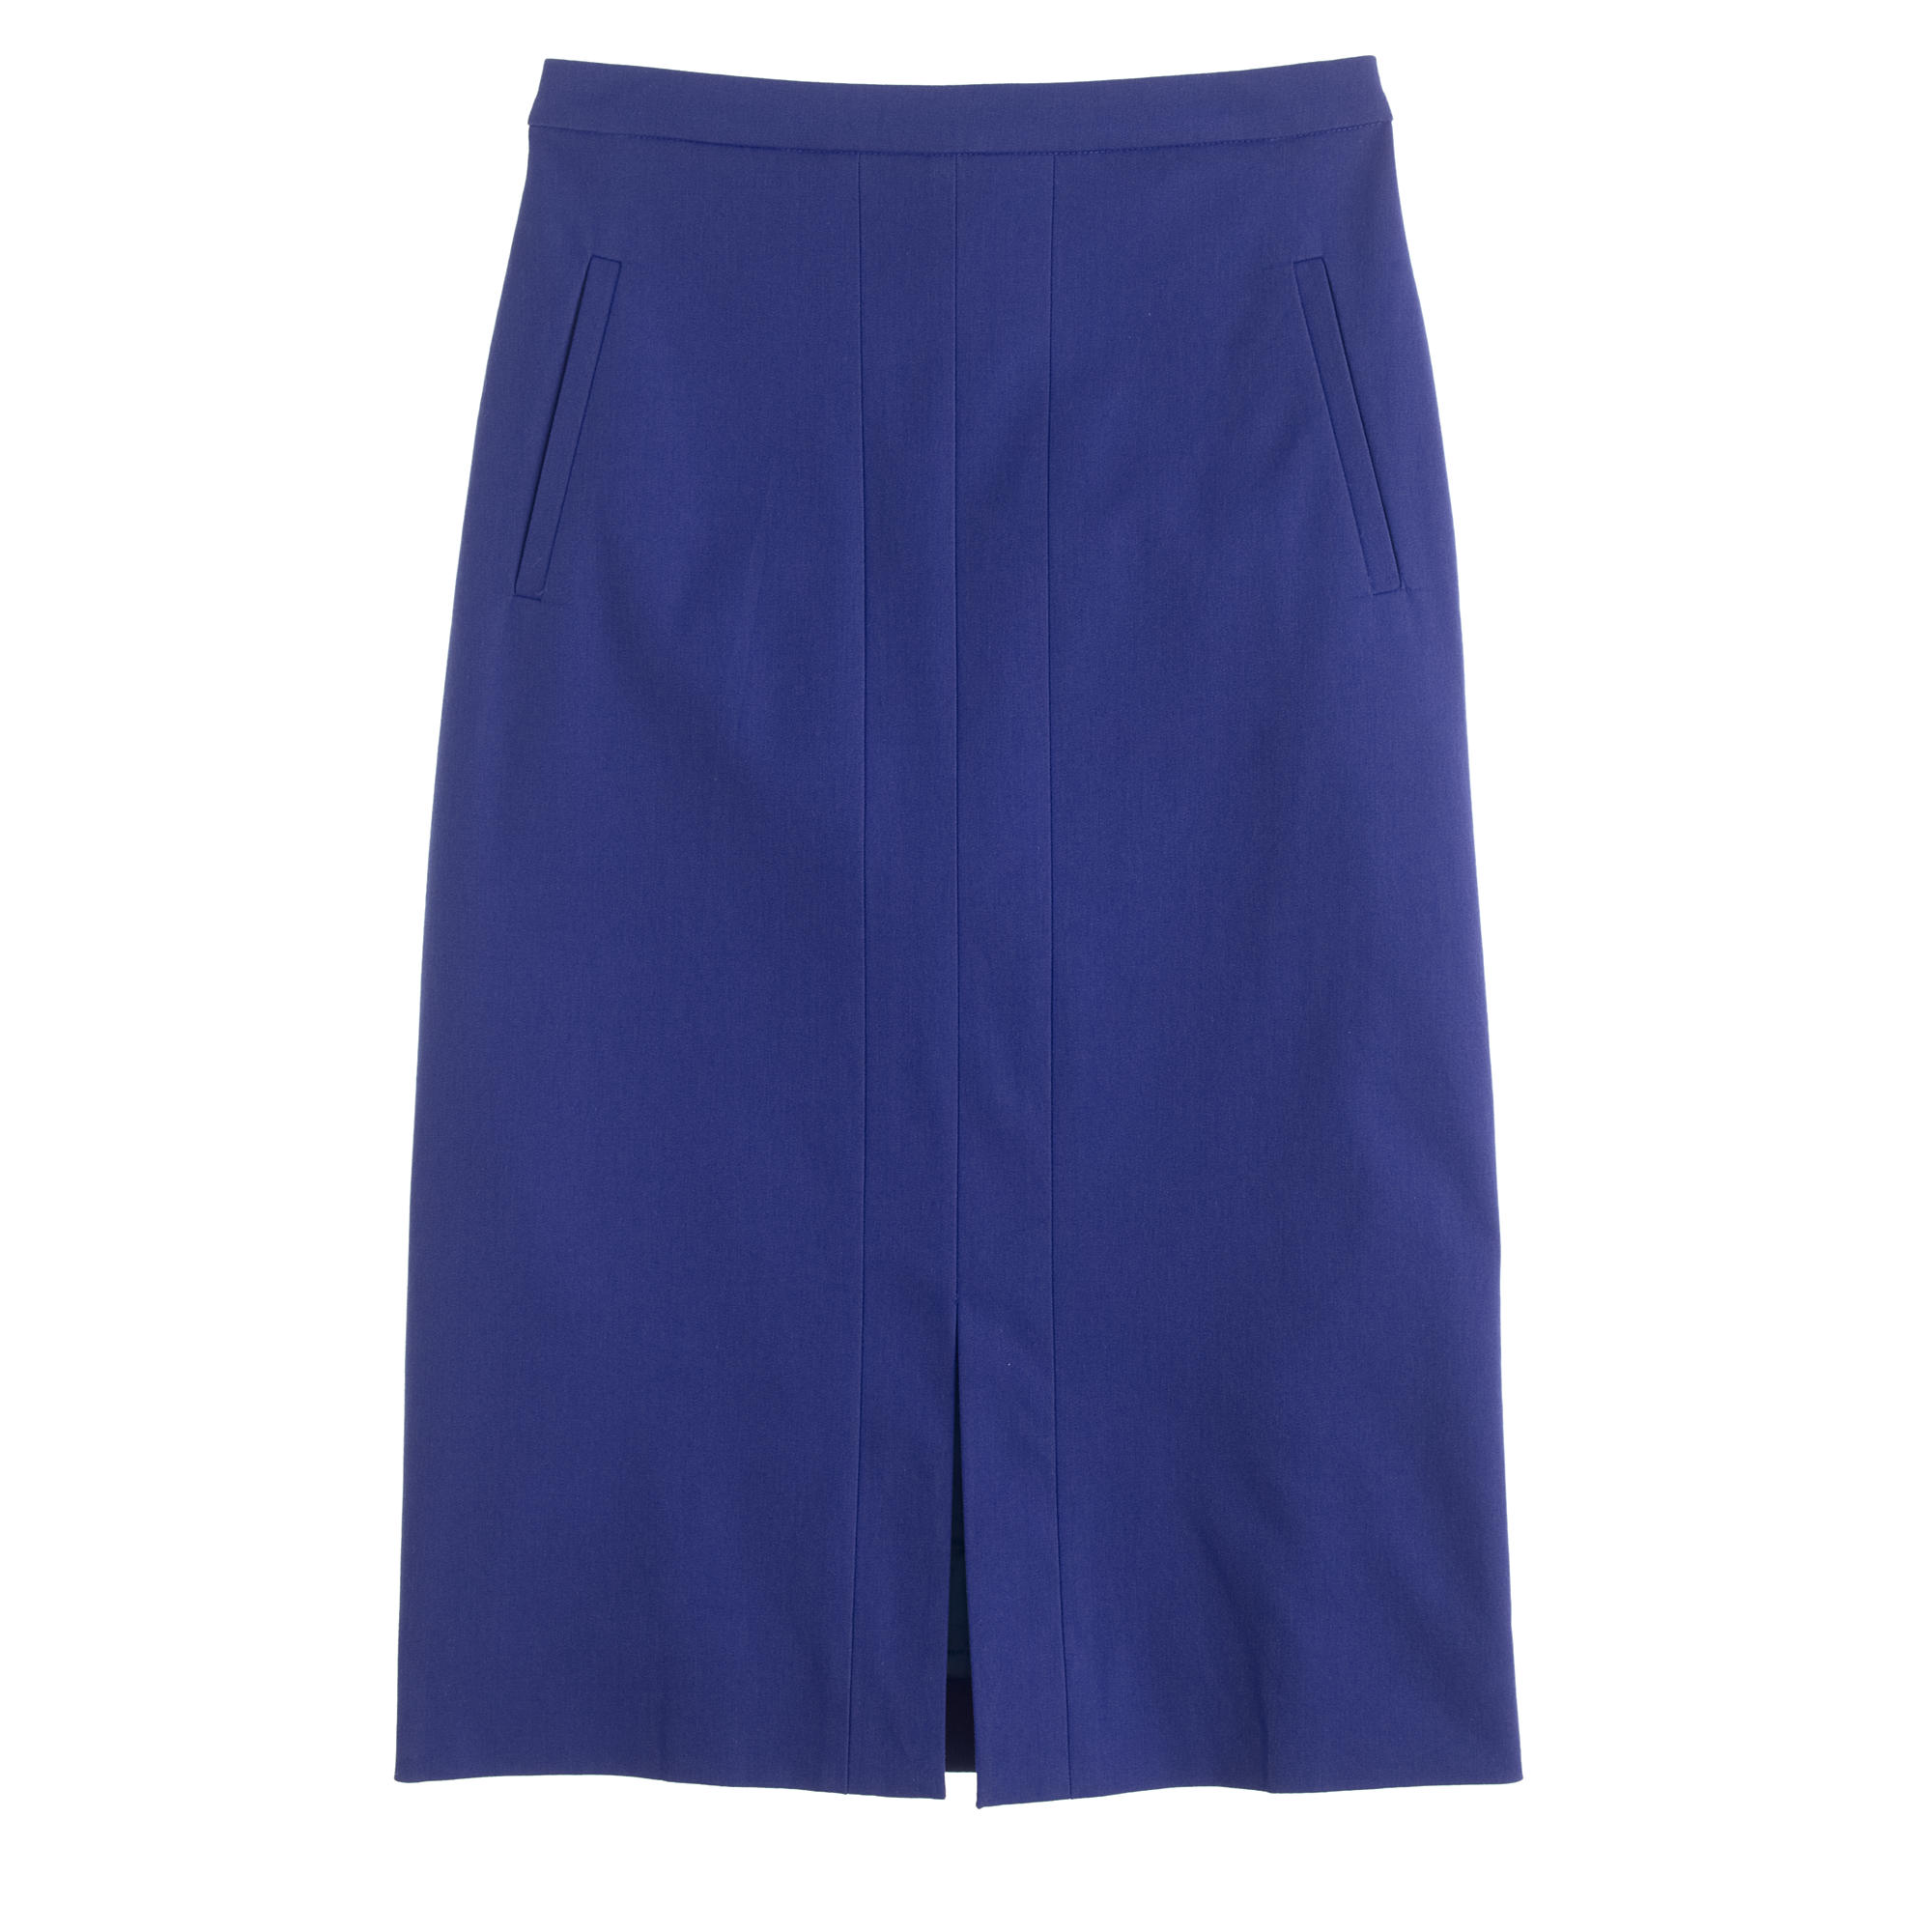 A-line skirt in bi-stretch cotton : Women suiting skirts | J.Crew